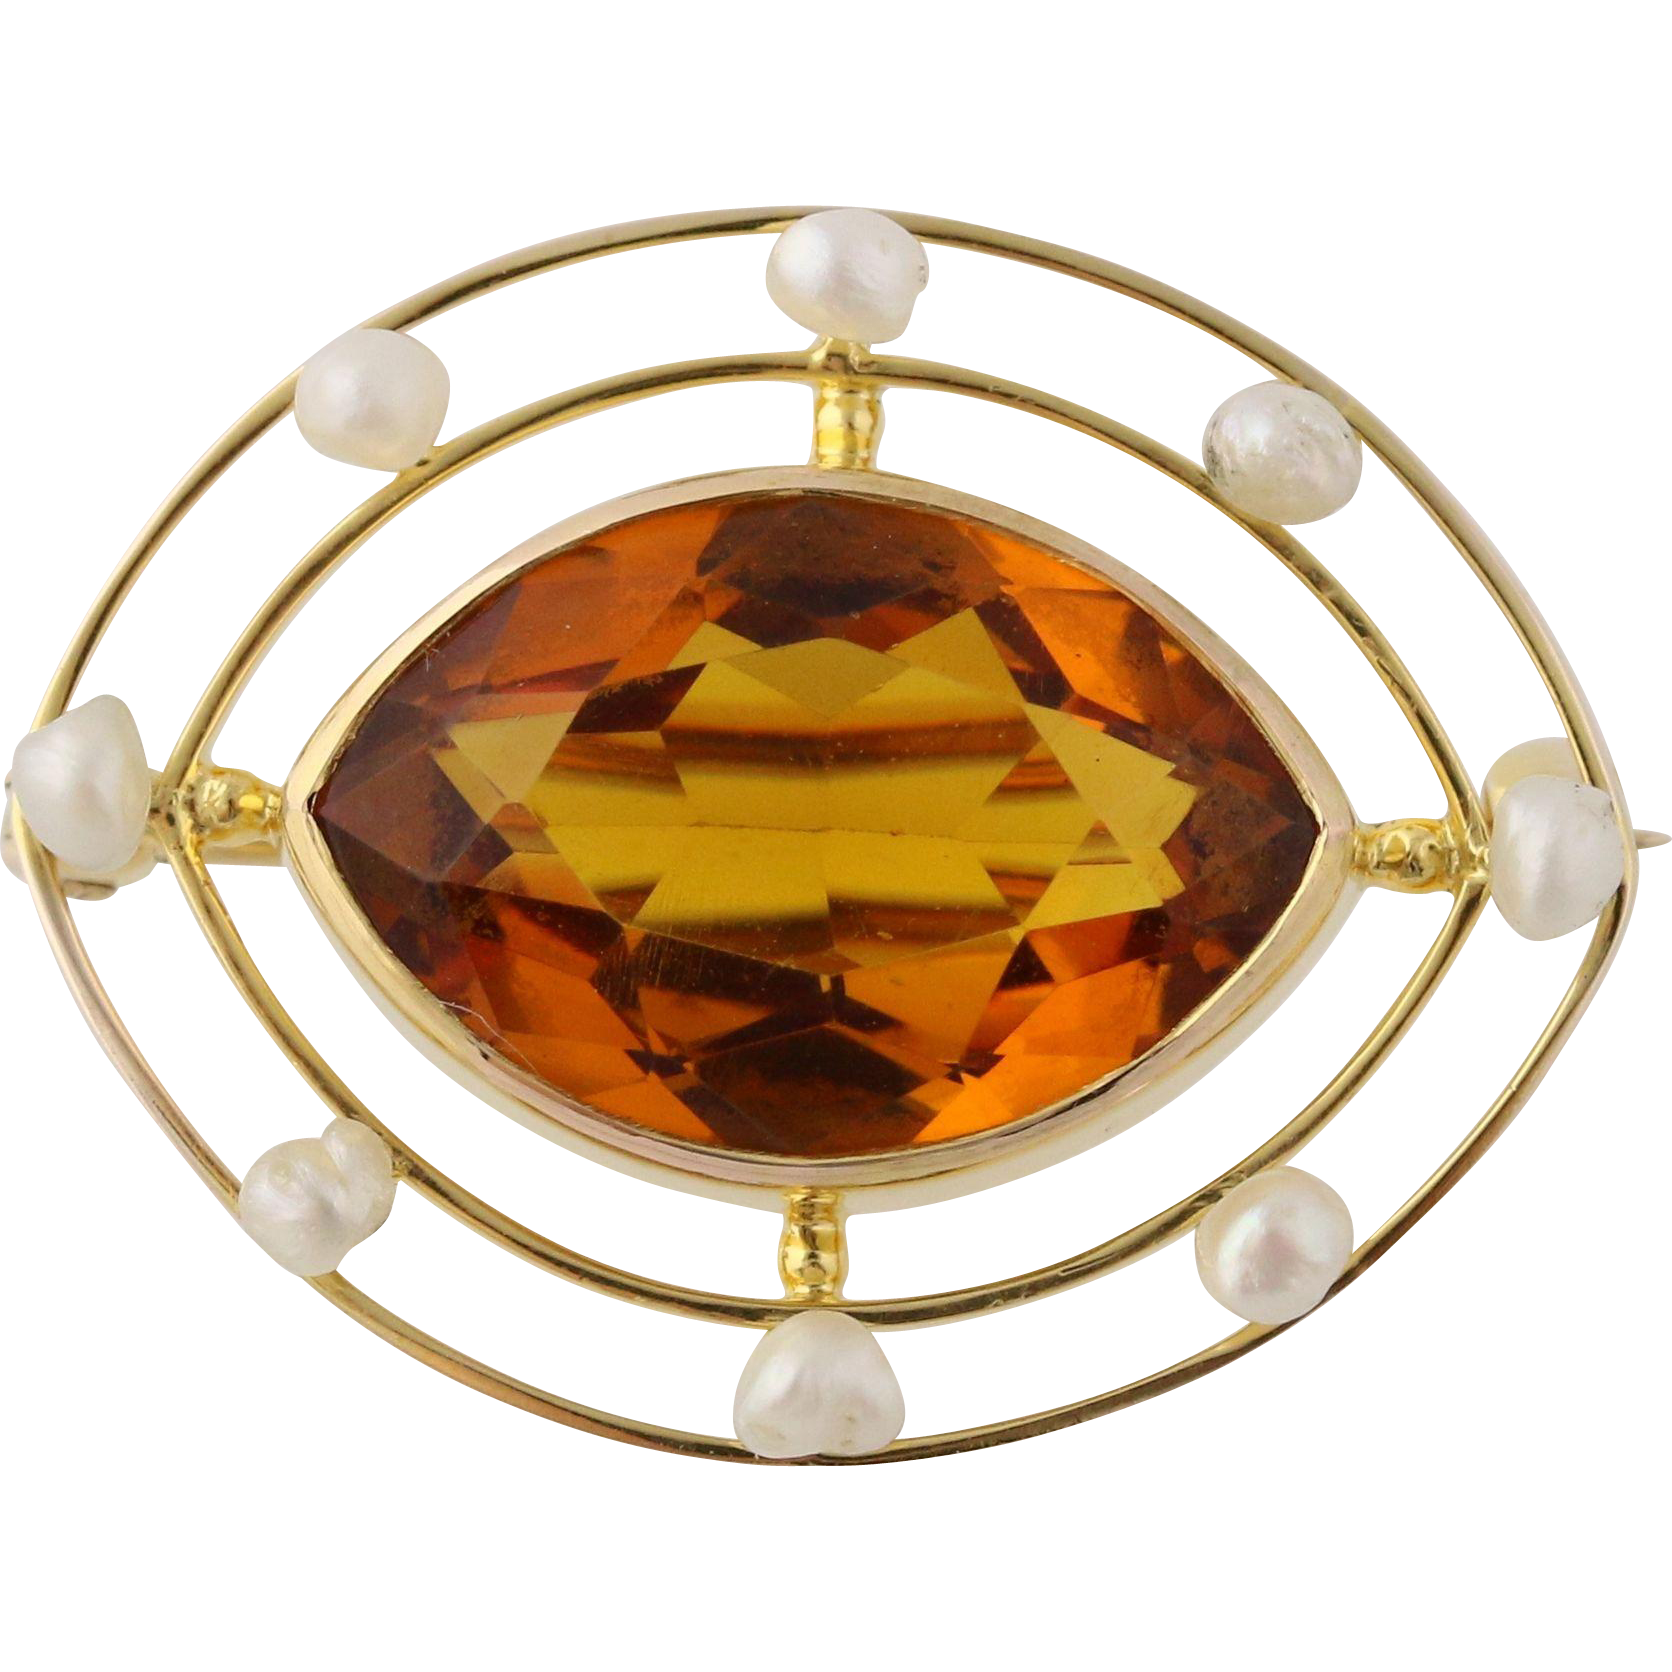 Edwardian Era Simulated Citrine & Pearl Brooch - 10k Yellow Gold Polished